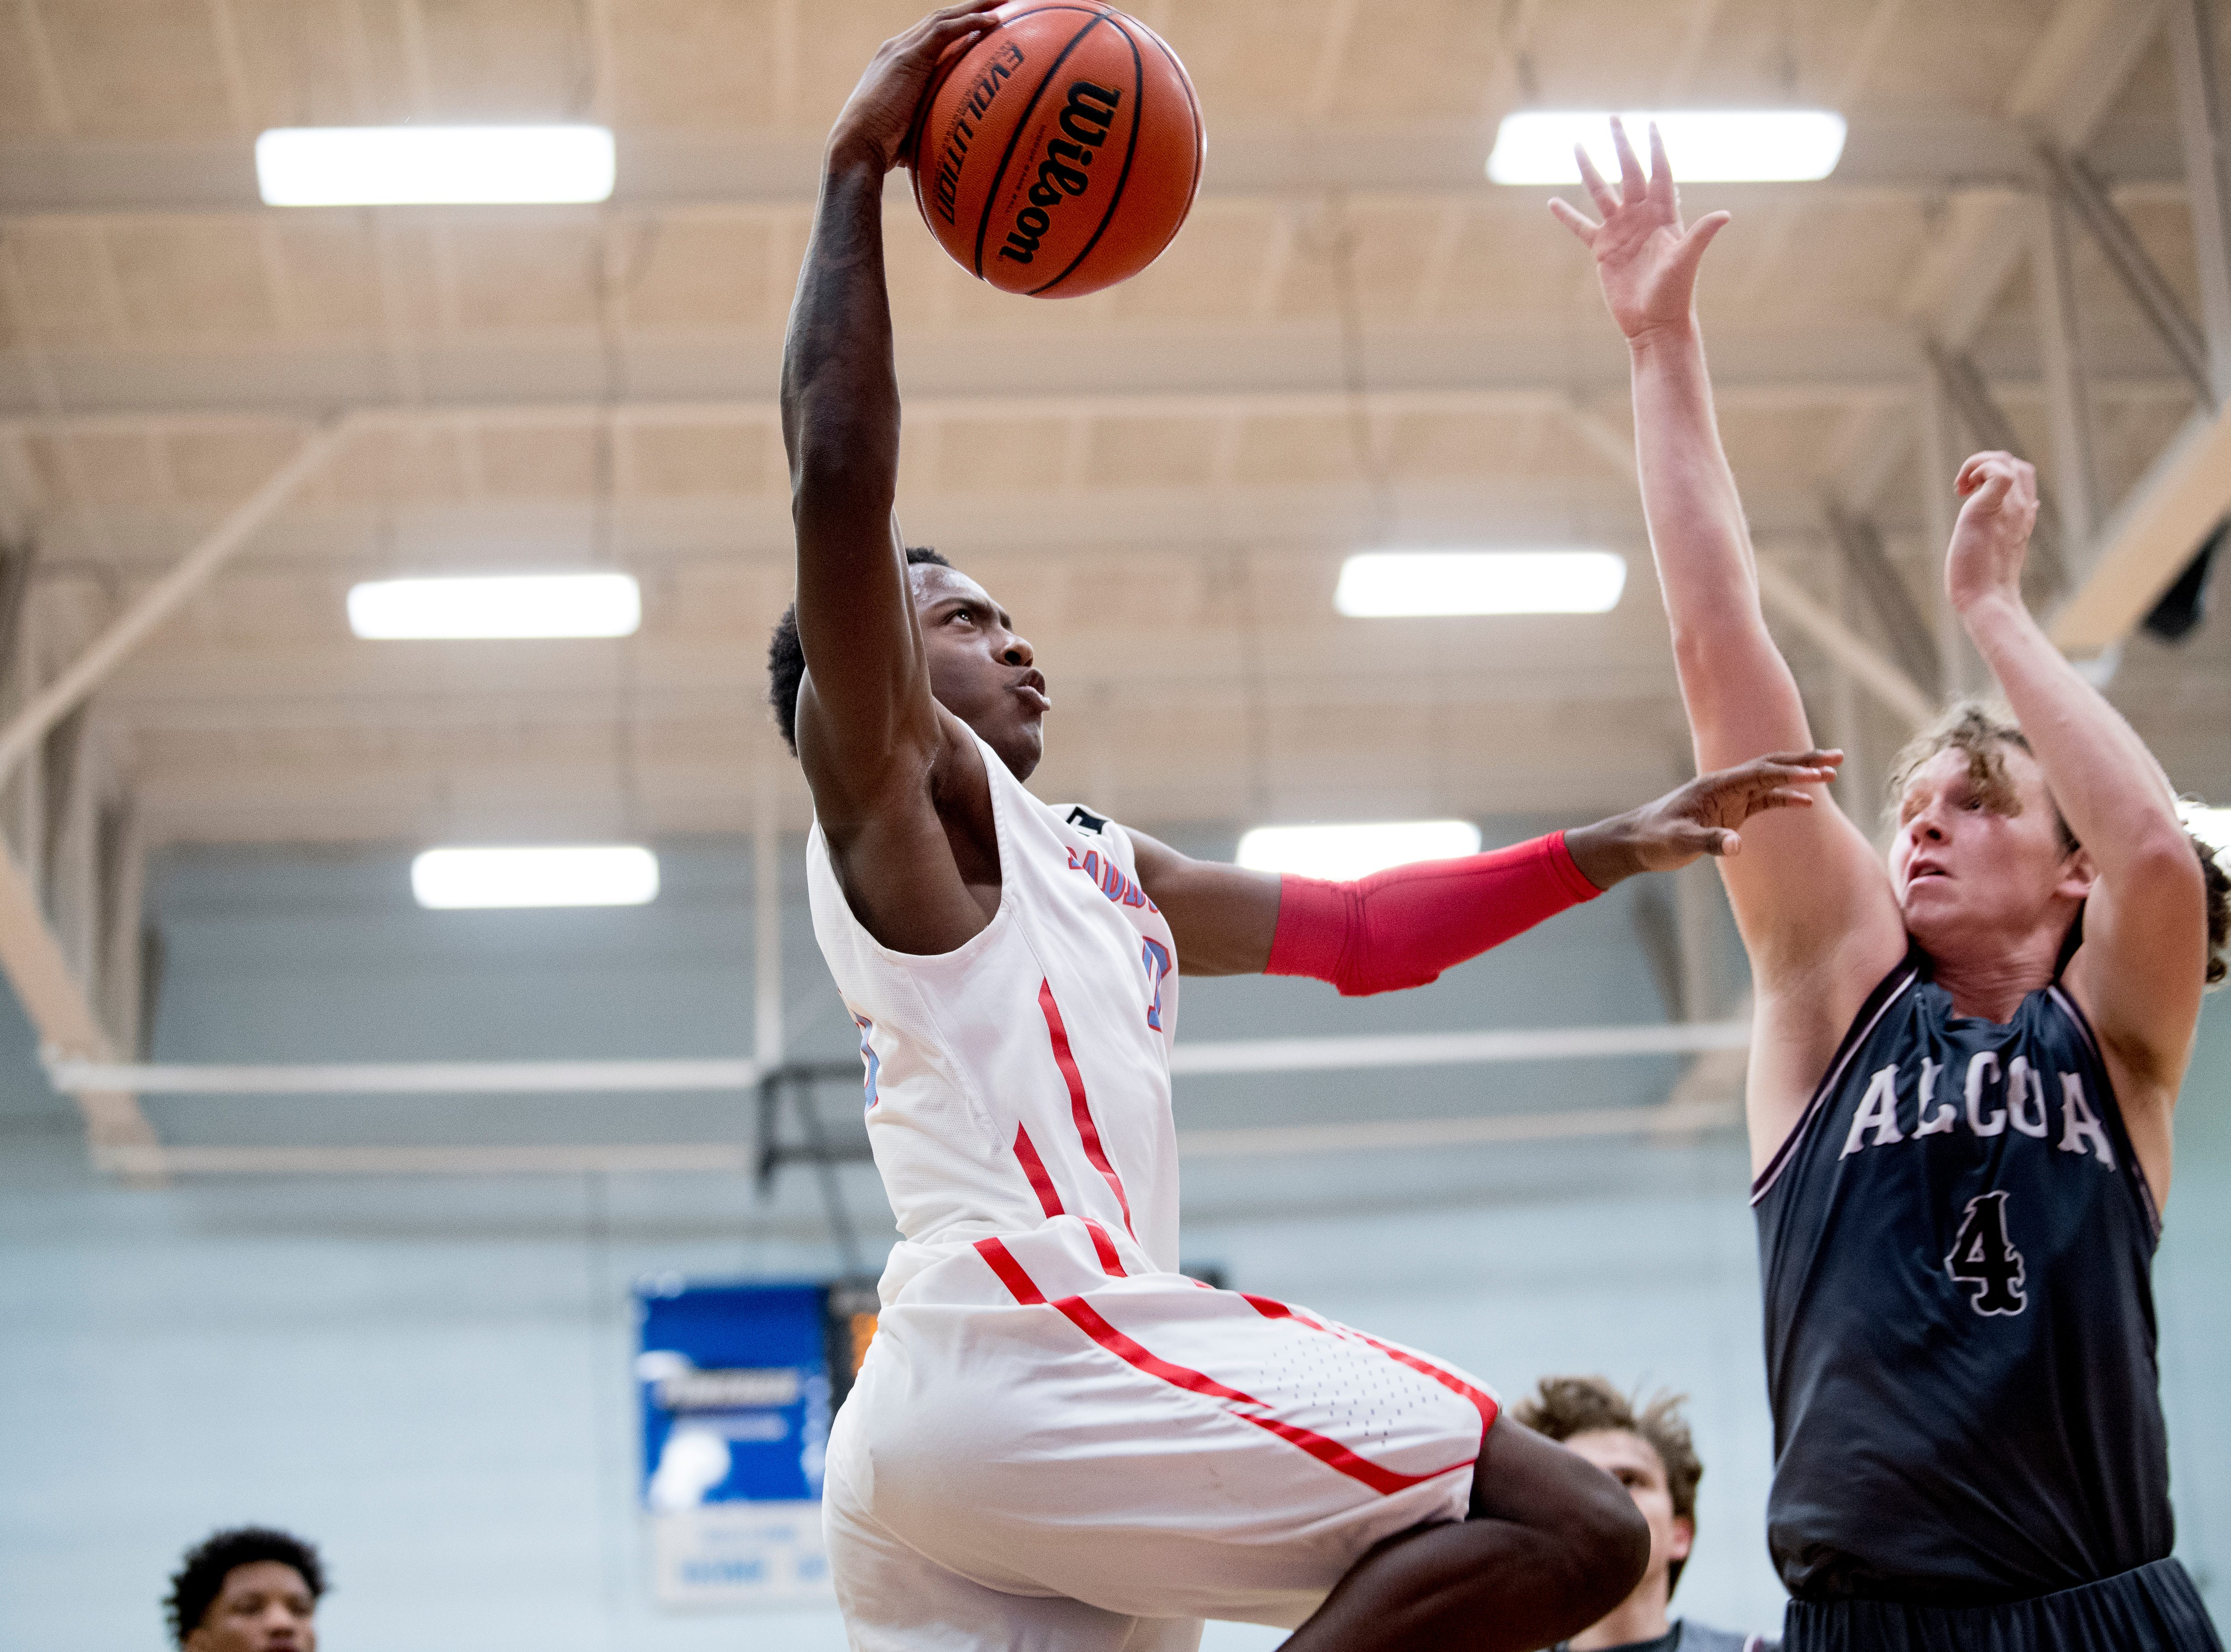 Austin-East's Derrion Battle (10) goes for a layup as Alcoa's  Nick Roberts (4) defends during a game between Austin-East and Alcoa at Austin-East High School in Knoxville, Tennessee on Friday, January 18, 2019.